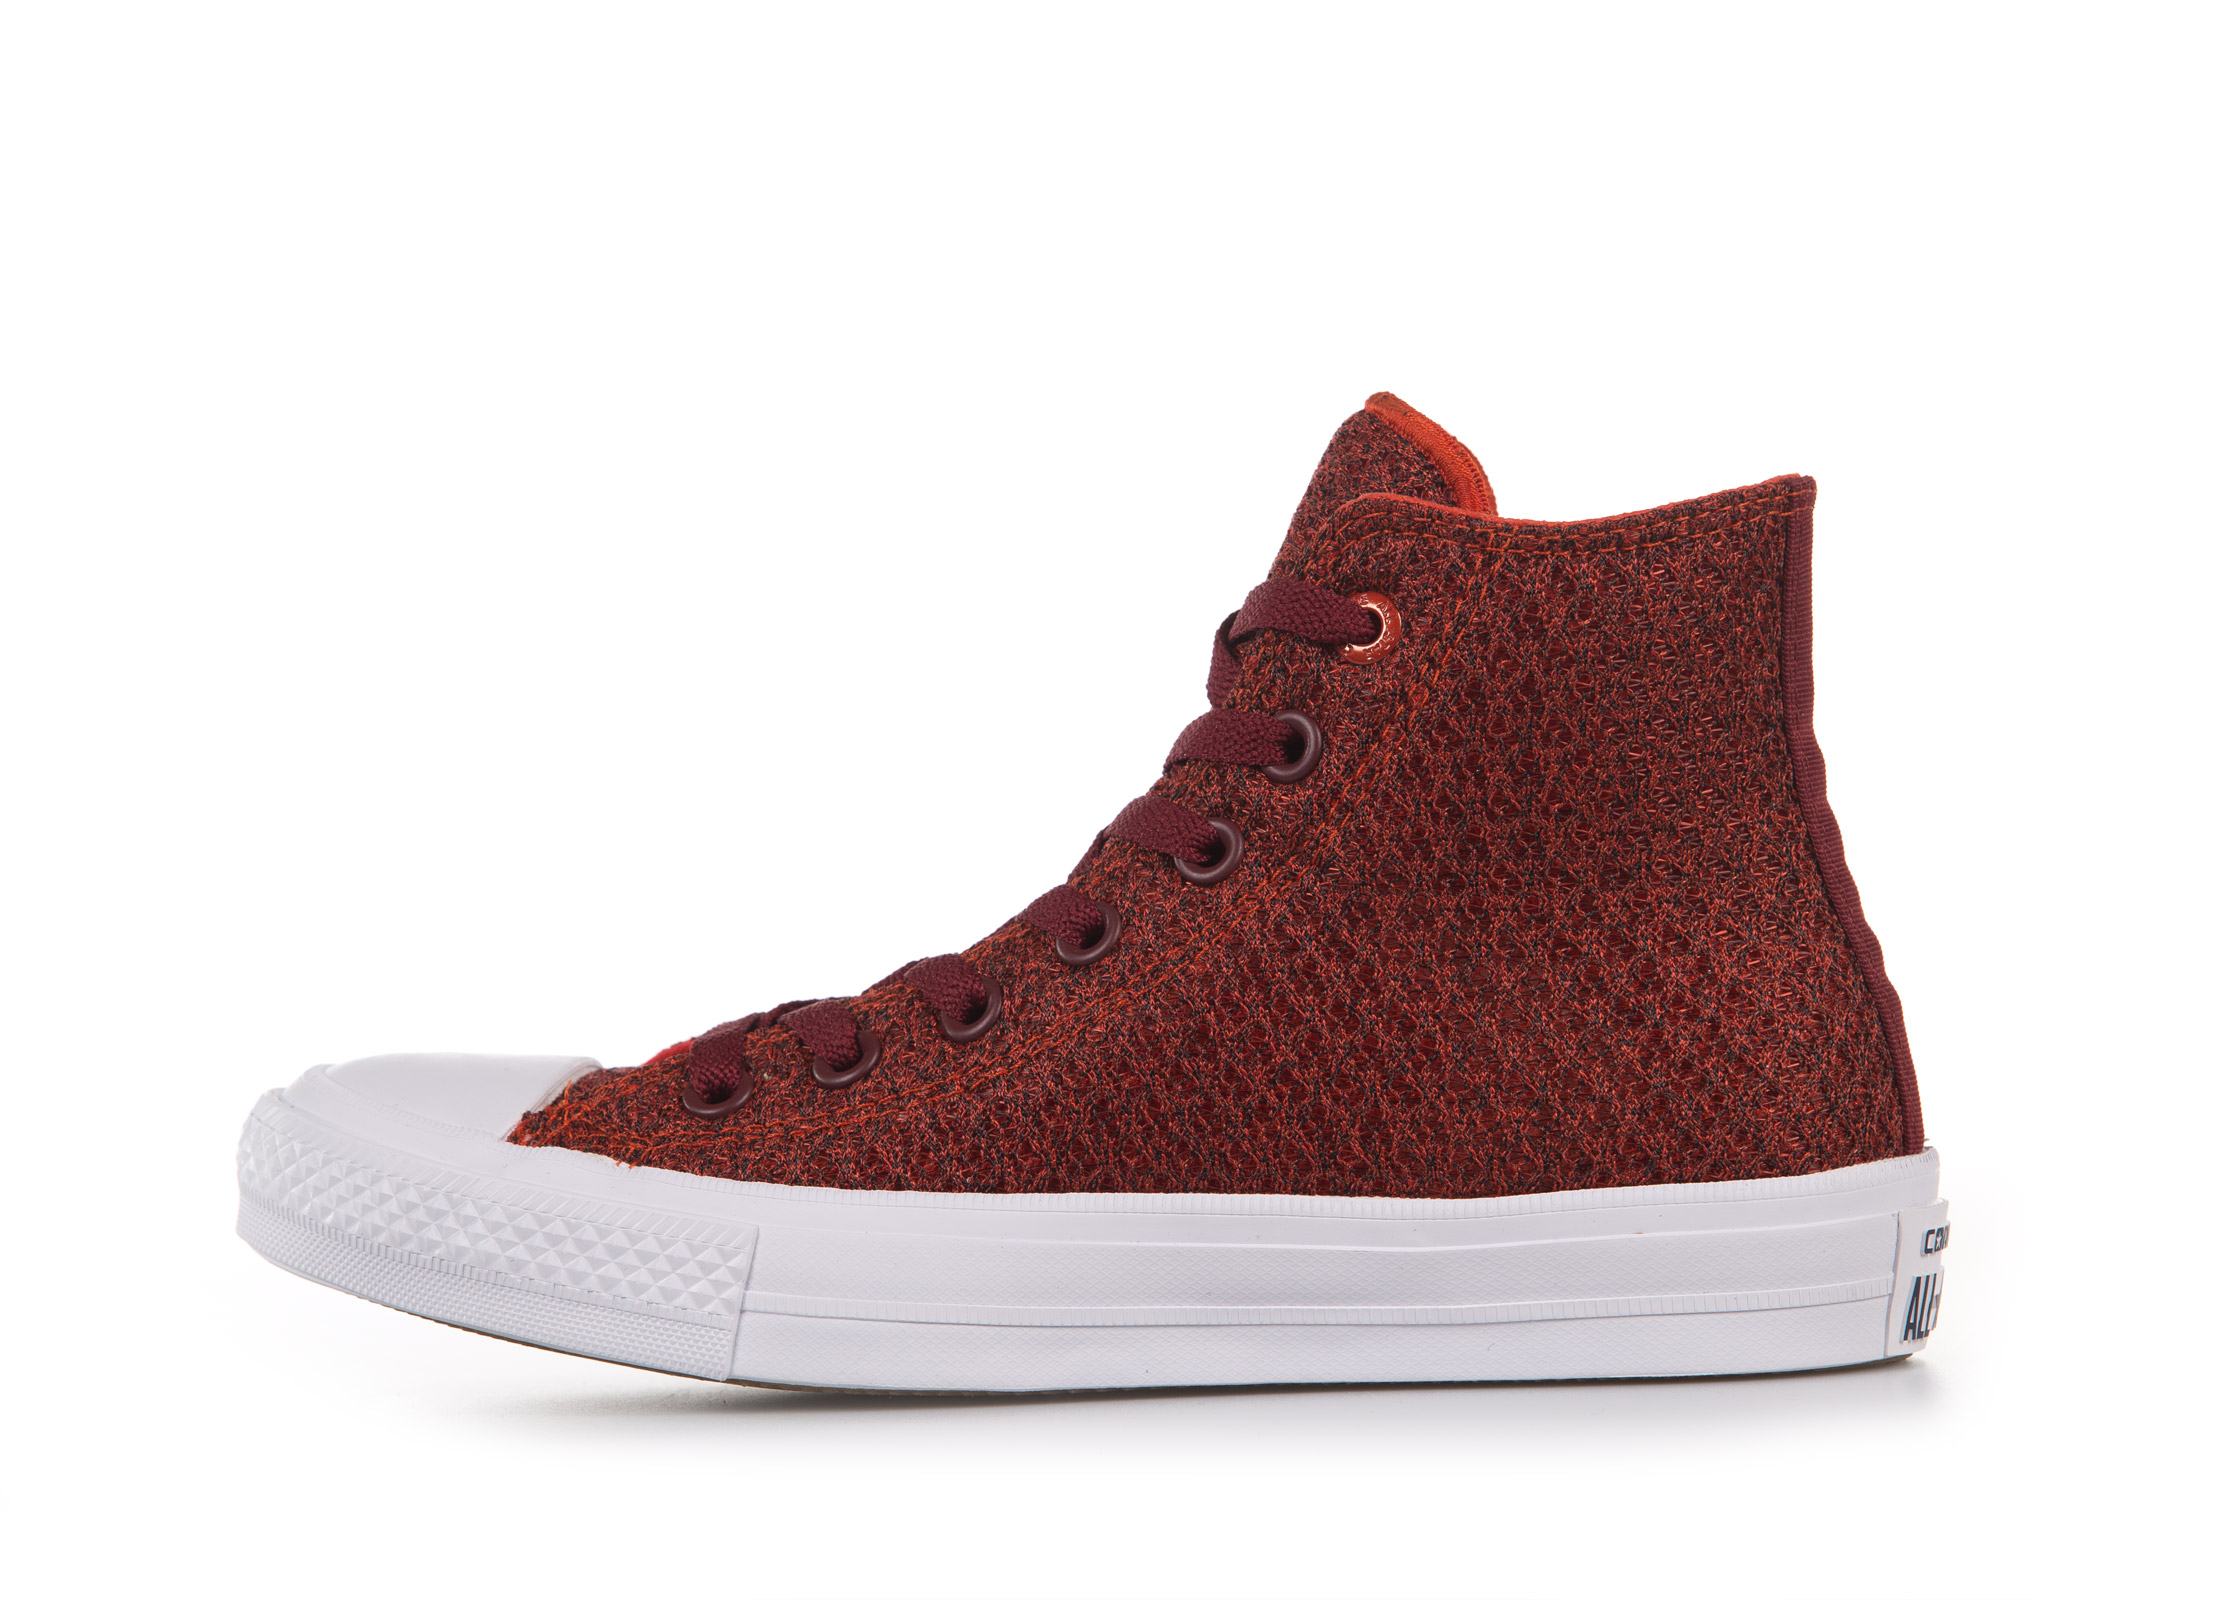 Converse All Star Chuck Taylor II Spacer Mesh 154019C Κόκκινο γυναικα   υποδήματα   μόδας